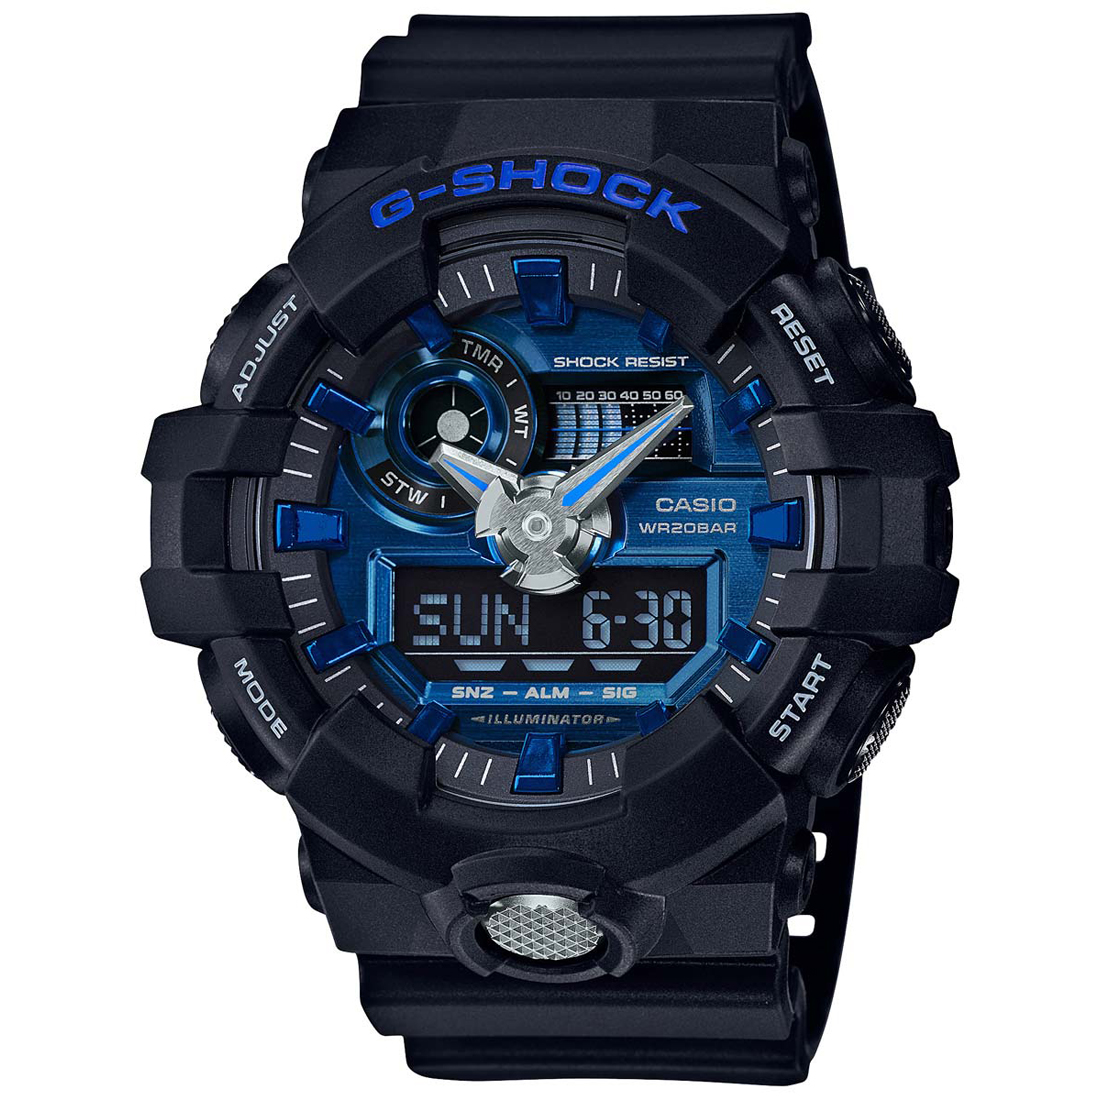 G739 GA-710-1A2DR G-SHOCK WATCH-G739